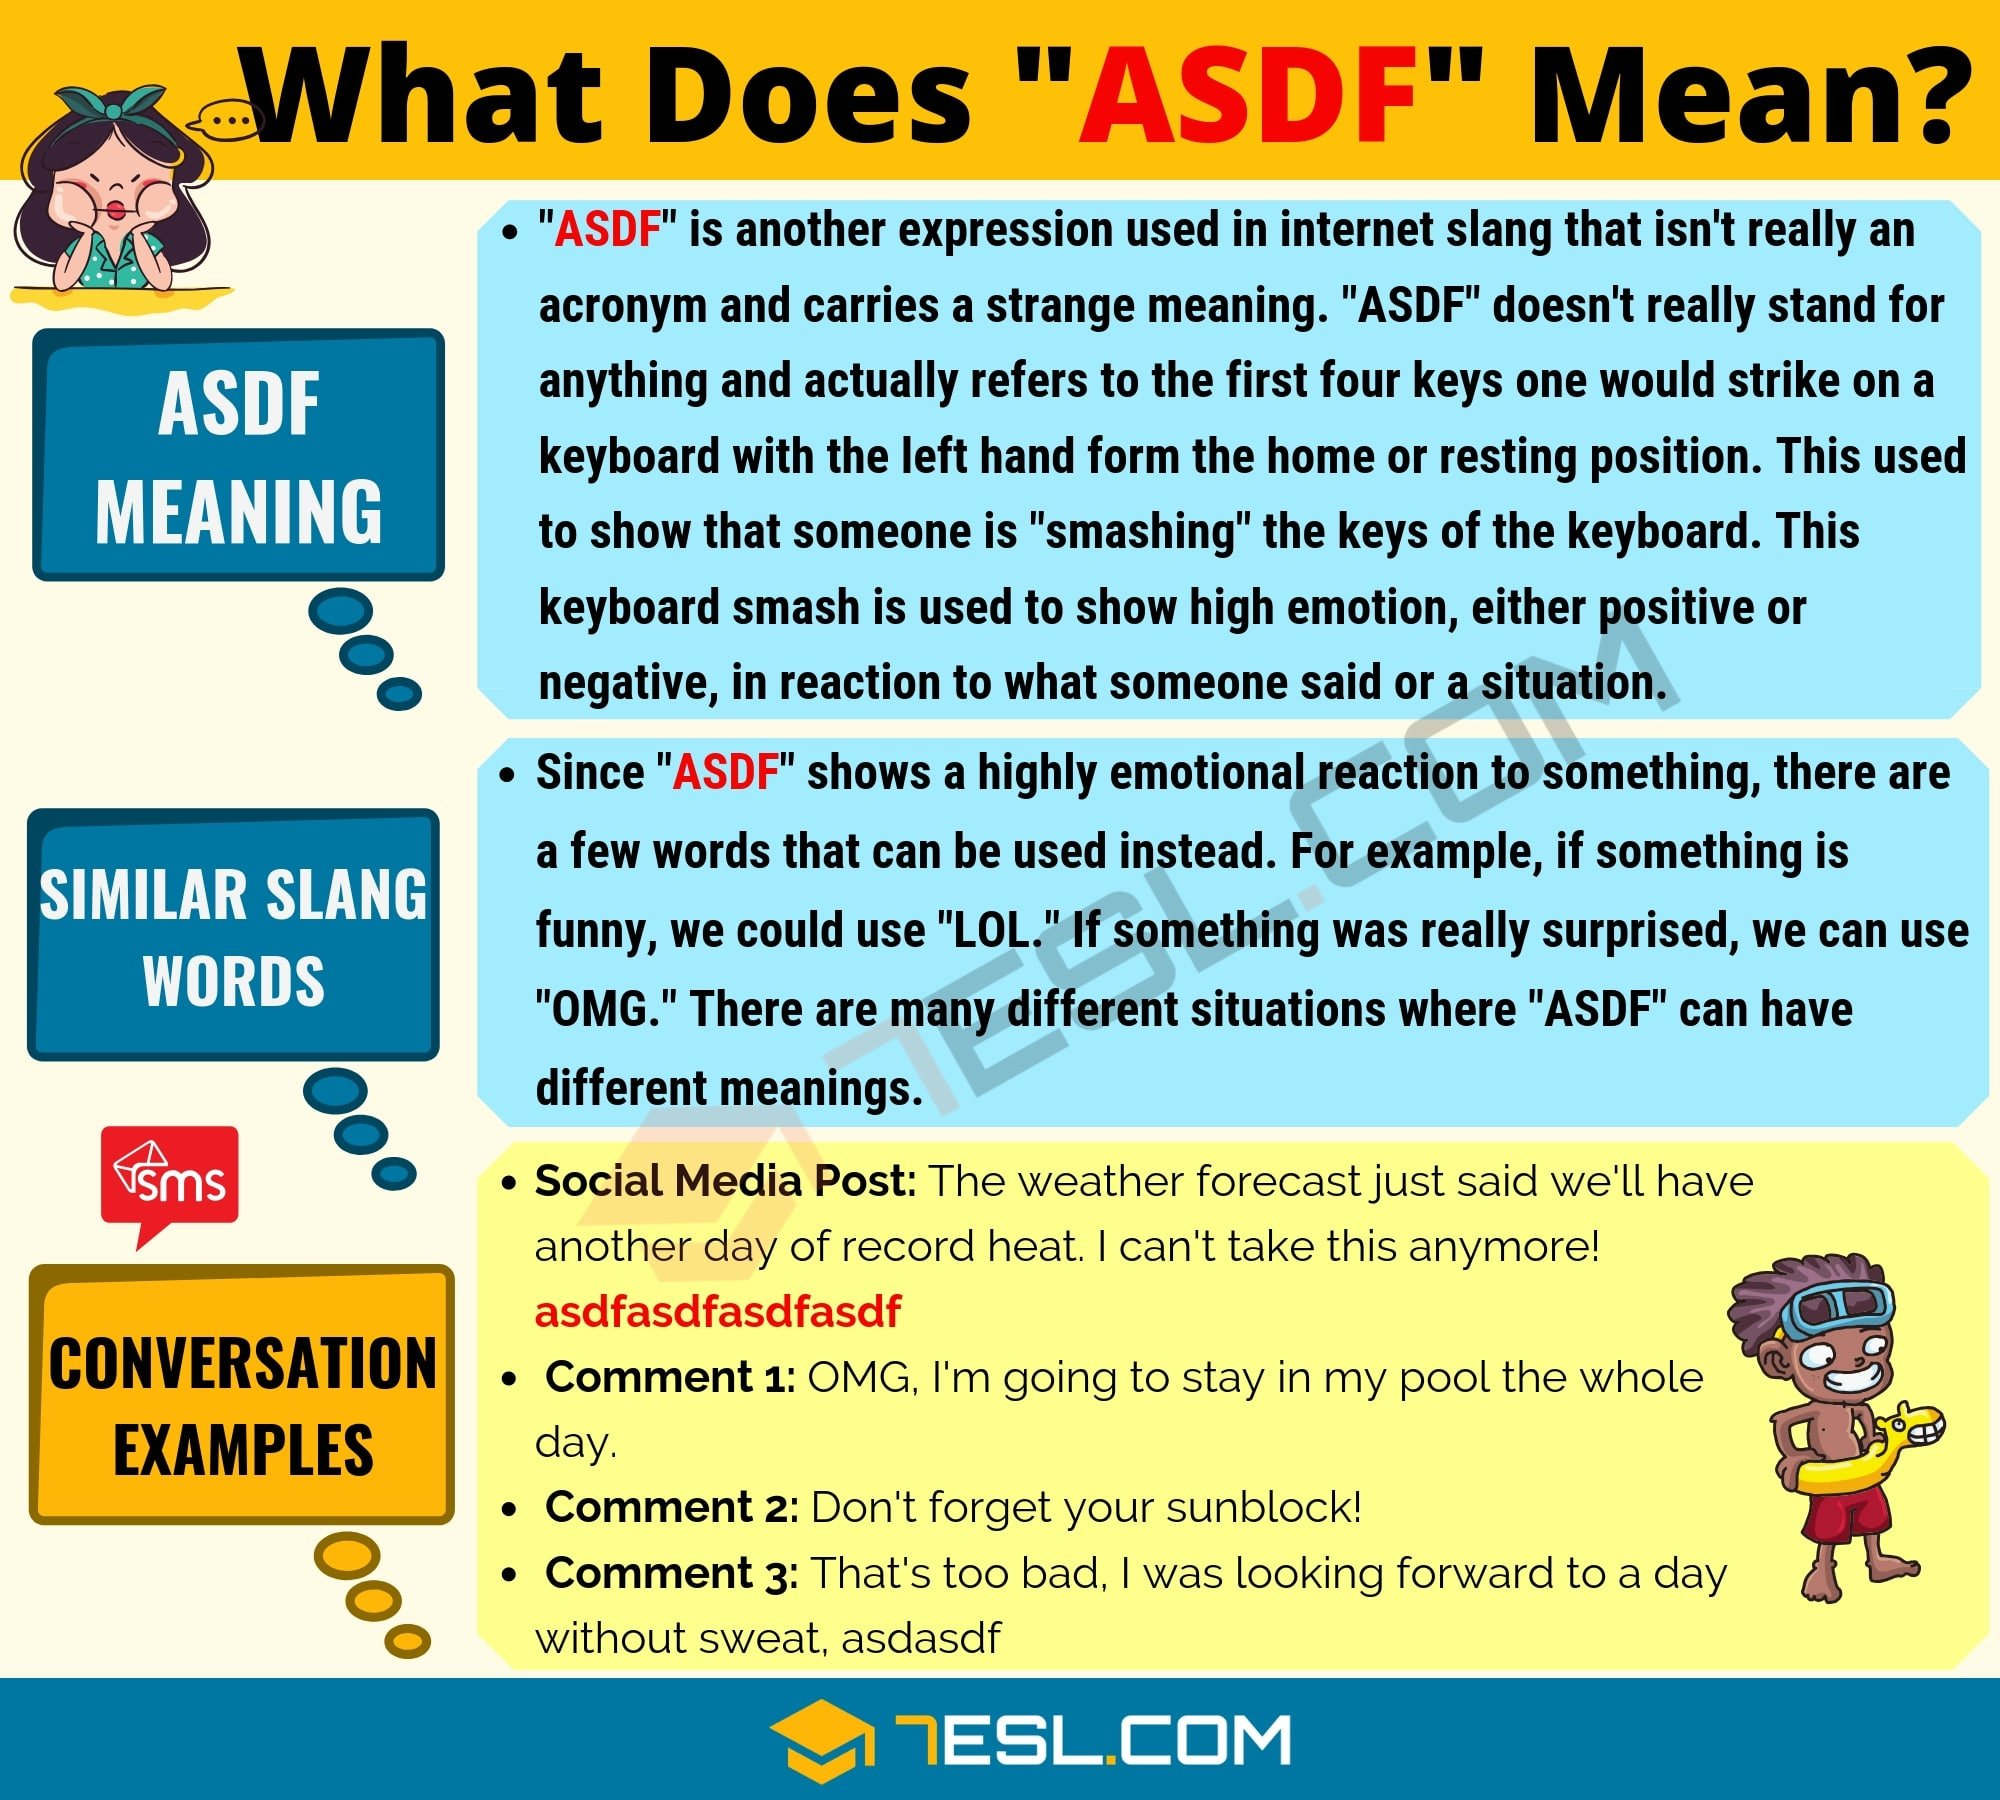 ASDF Meaning: What Does ASDF Mean? Useful Text Conversations